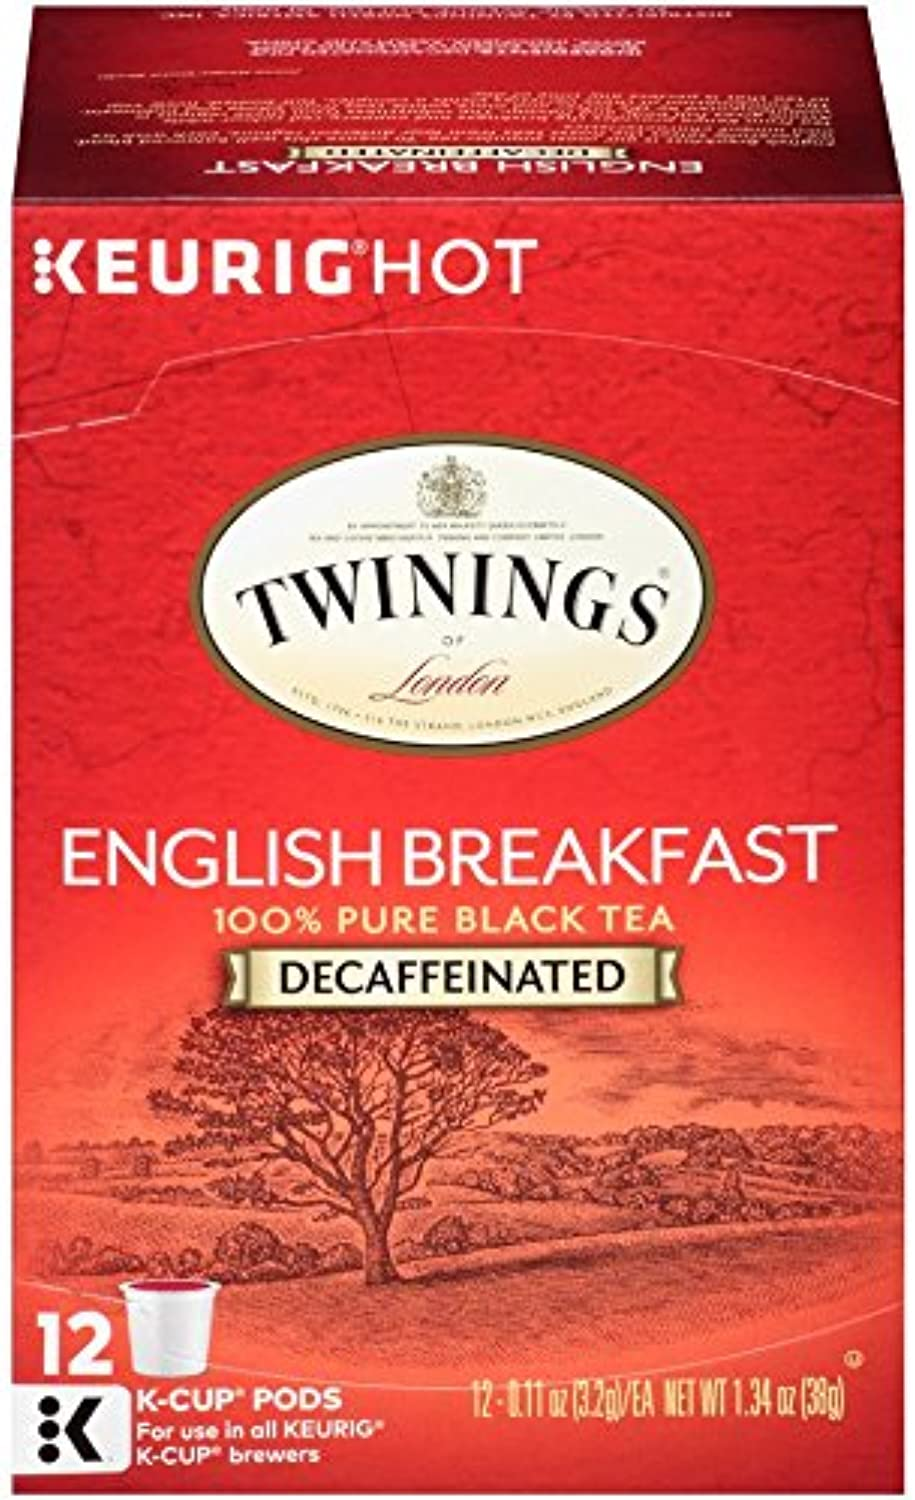 Twinings of London Decaffeinated English Breakfast Tea K-Cups for Keurig, 12 Count (Pack of 6)